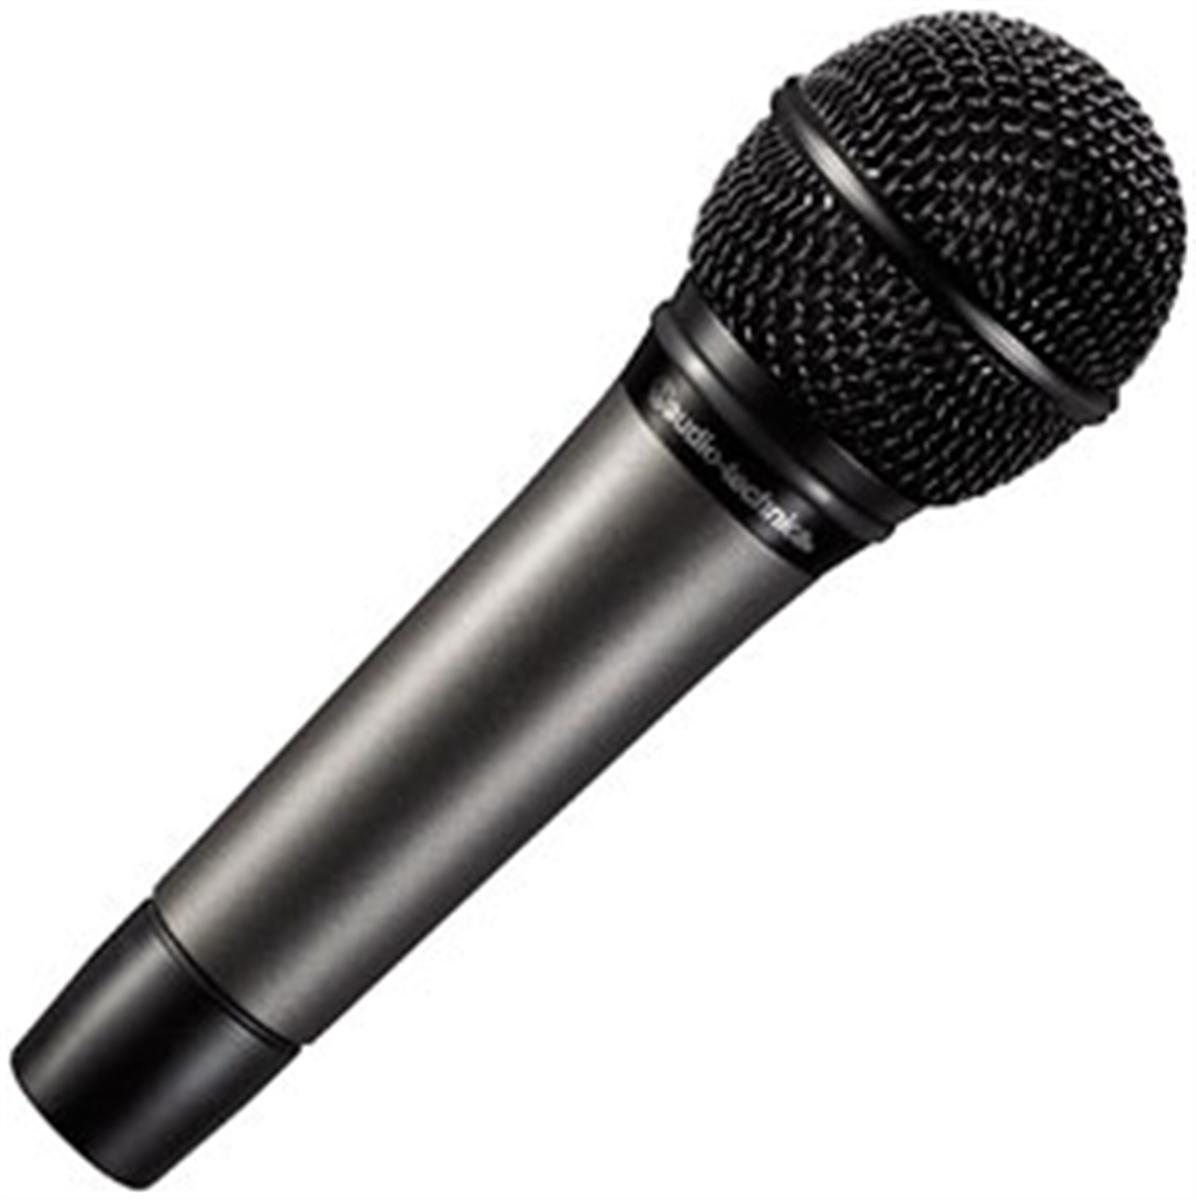 Microphone Clip Art Free Clipart Images